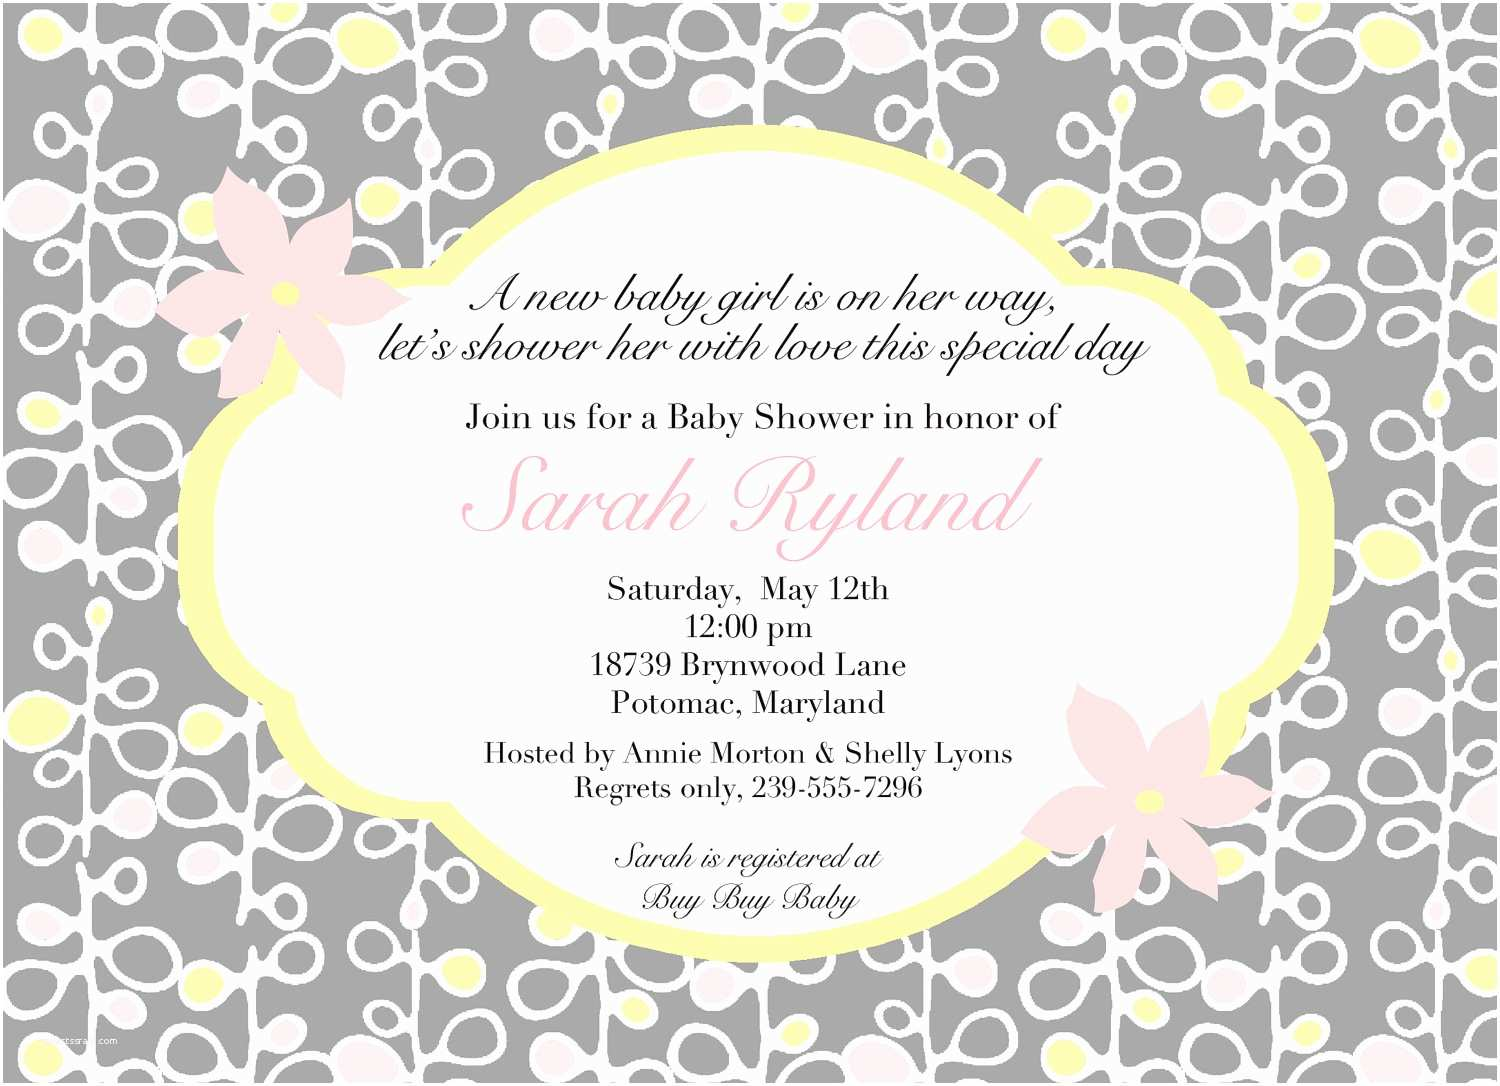 Baby Shower Invitation Templates Wording for Baby Shower Invitations asking for Gift Cards